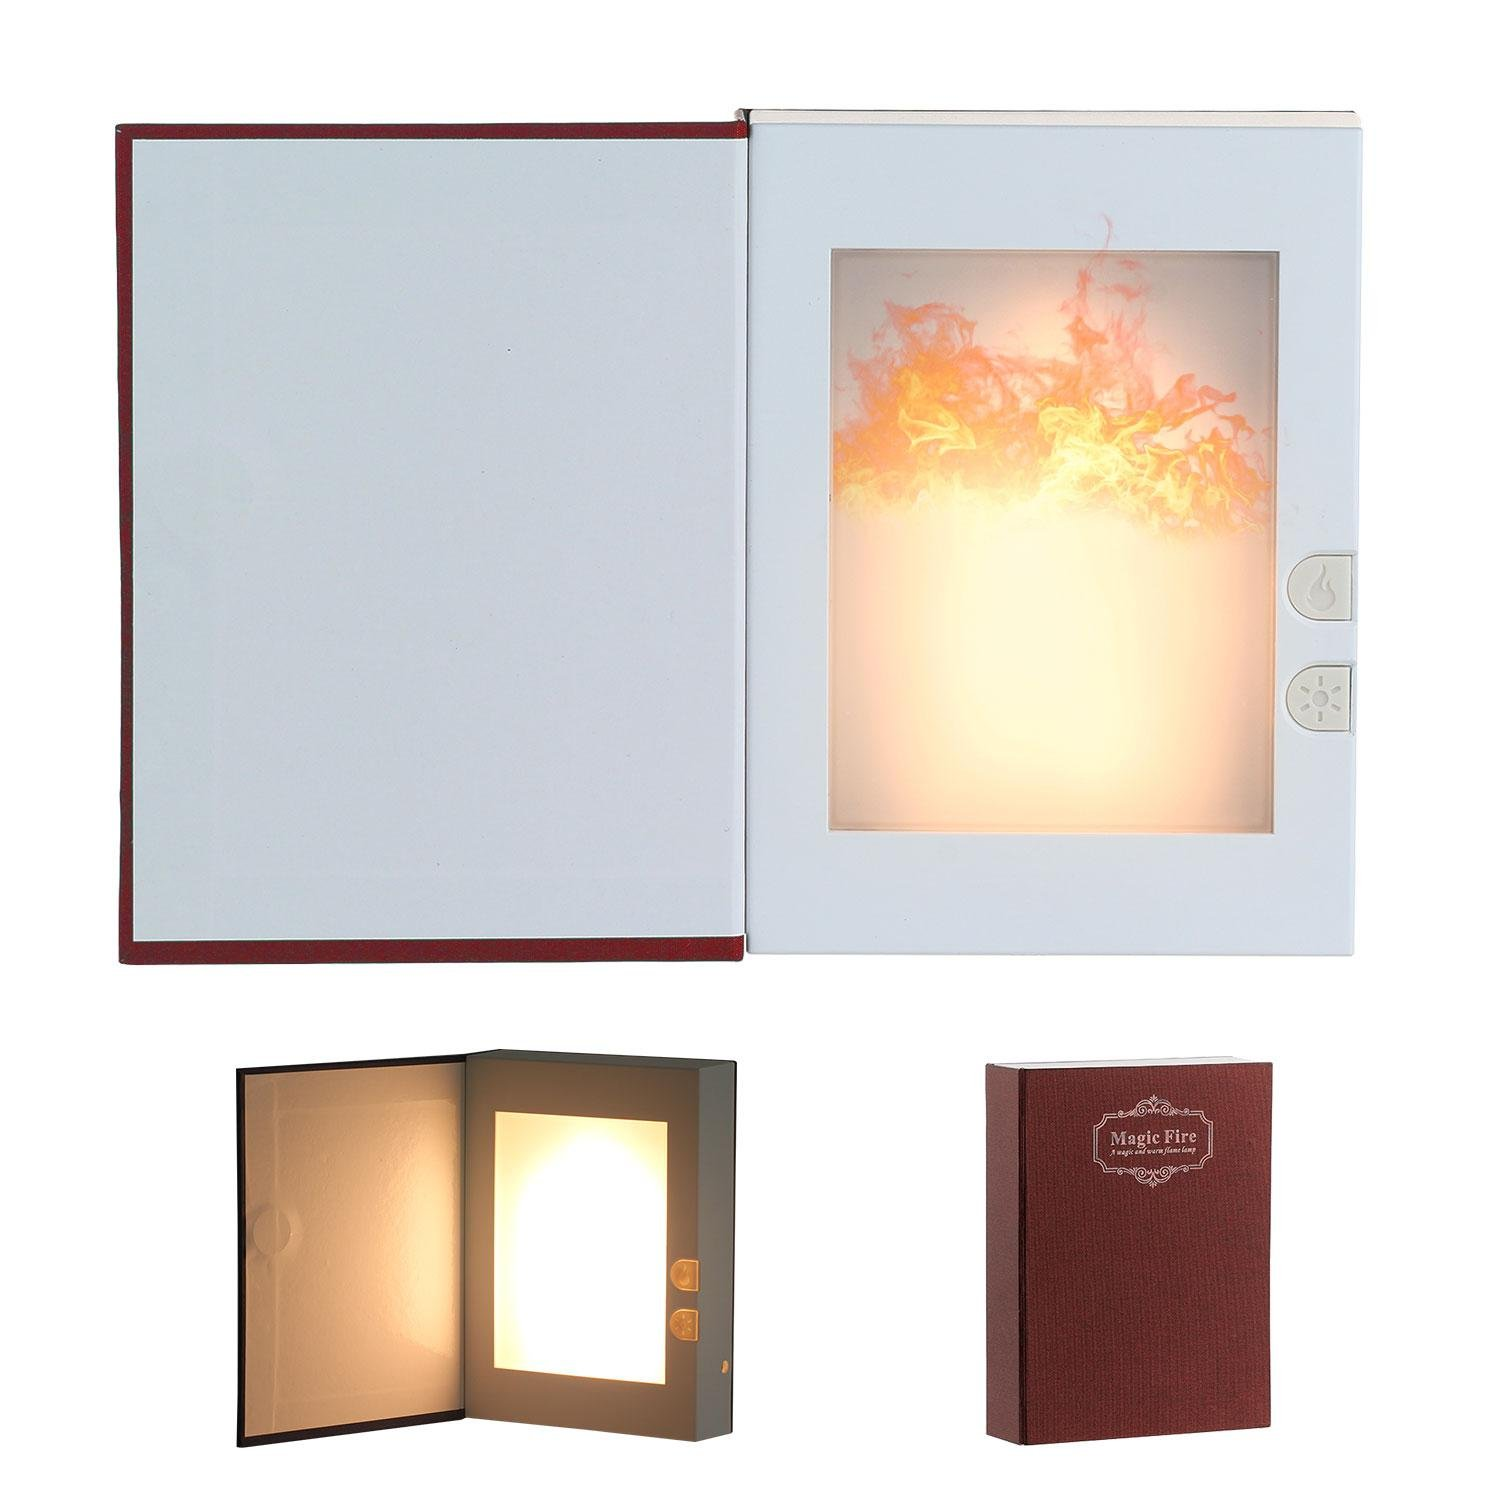 Pawaca LED Flame Effect Fire Light, USB Rechargable Book Shaped Light Flickering Fire Atmosphere Decorative Lamps for Decor, Magic book Design- Creative gift for Birthday, Lovers, Holiday